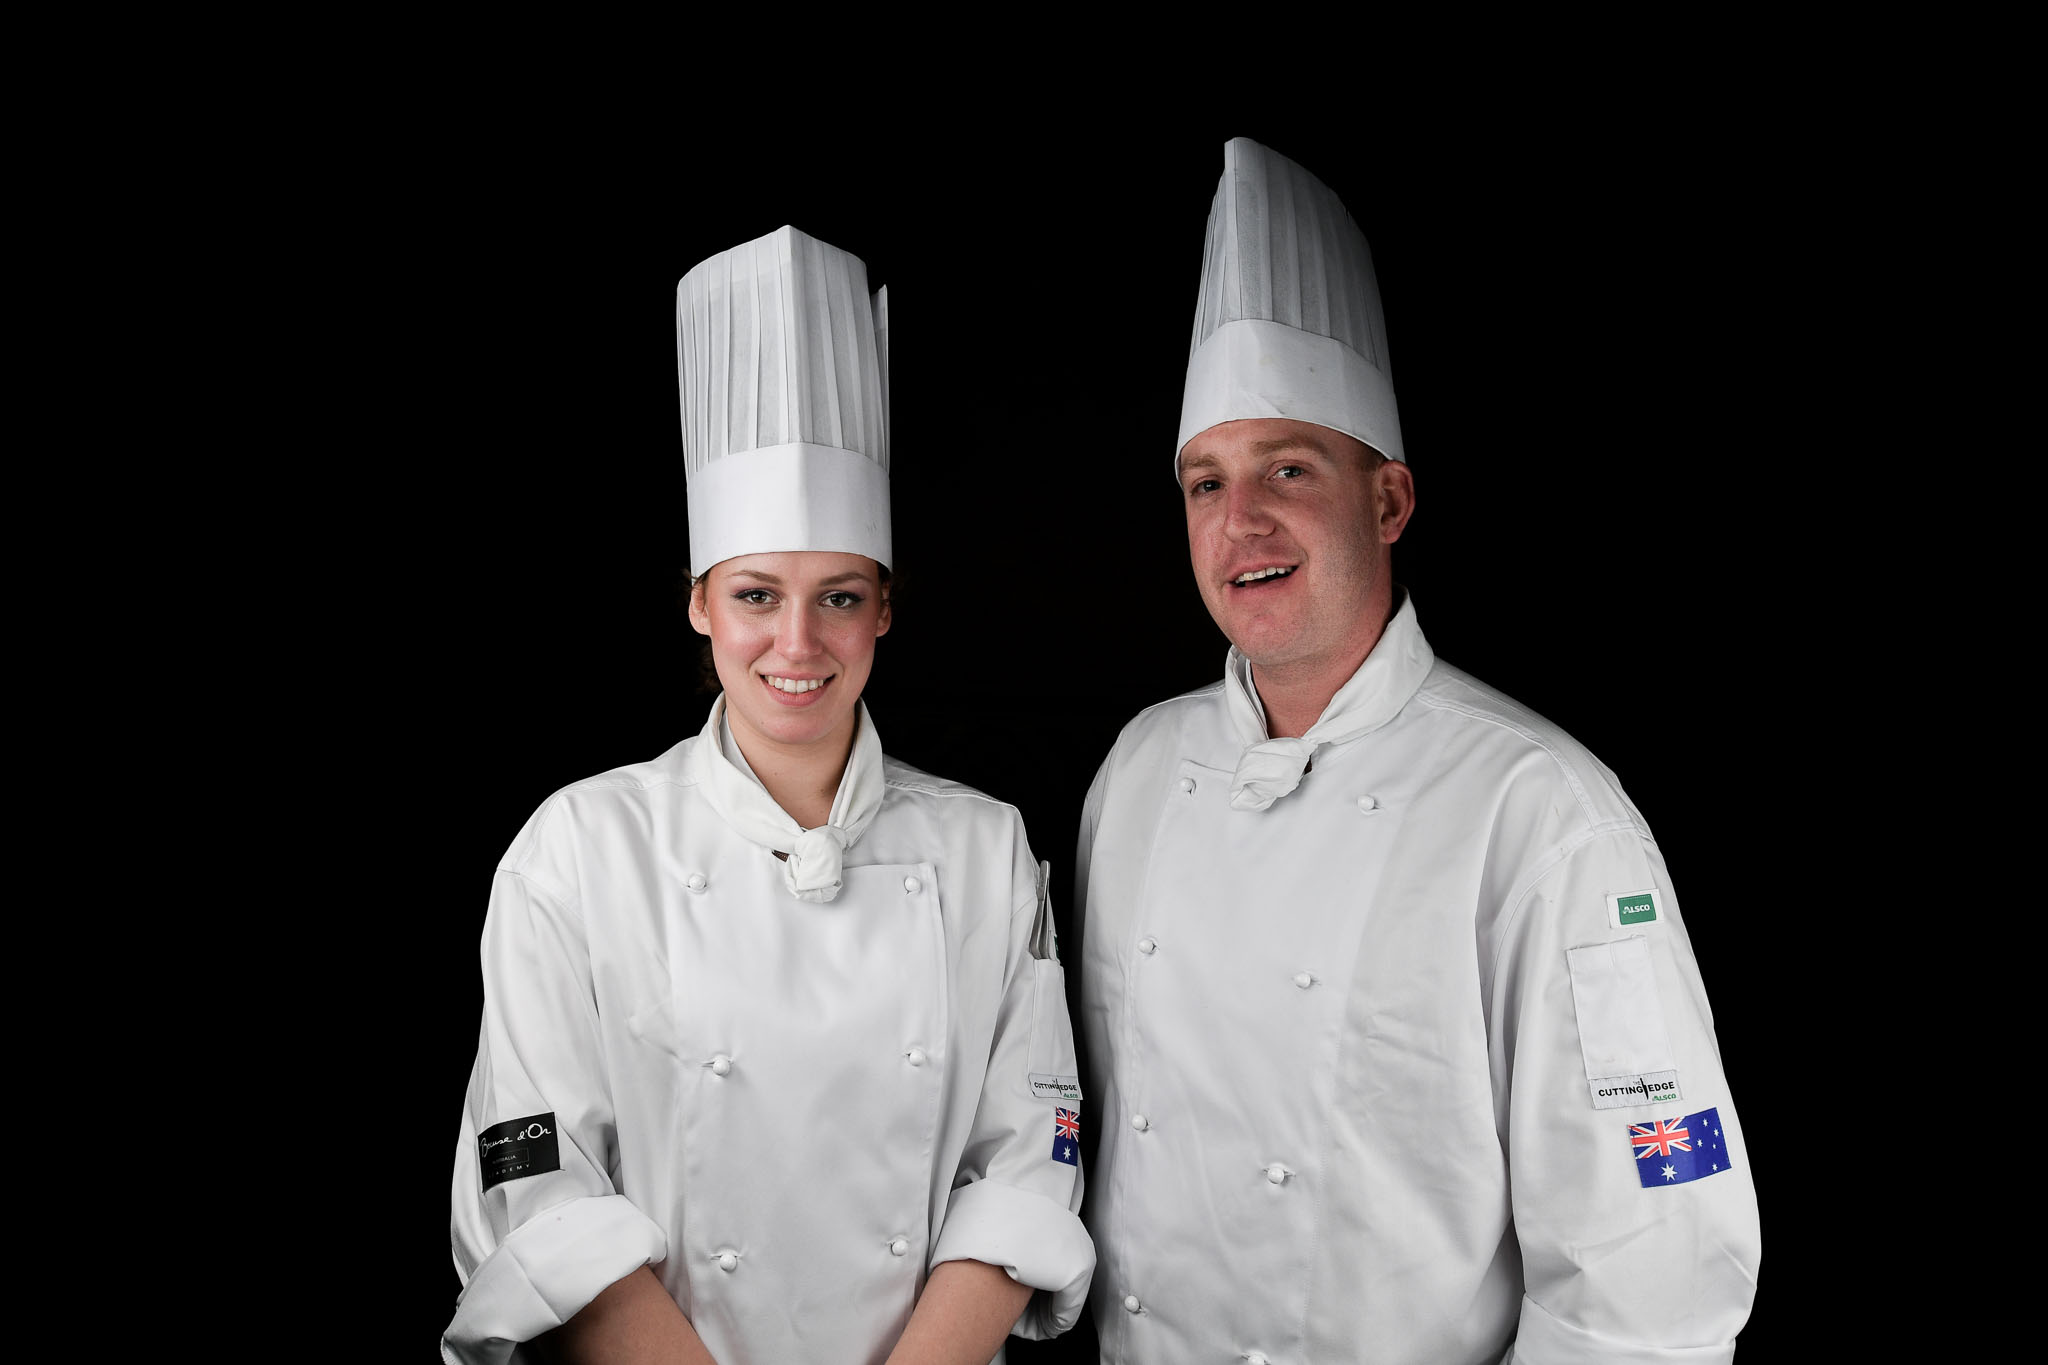 Melbourne, 30 May 2017 - Laura Skvor commis chef and Michael Cole of the Georgie Bass Café & Cookery in Flinders pose for a photograph at the Australian selection trials of the Bocuse d'Or culinary competition held during the Food Service Australia show at the Royal Exhibition Building in Melbourne, Australia. Photo Sydney Low